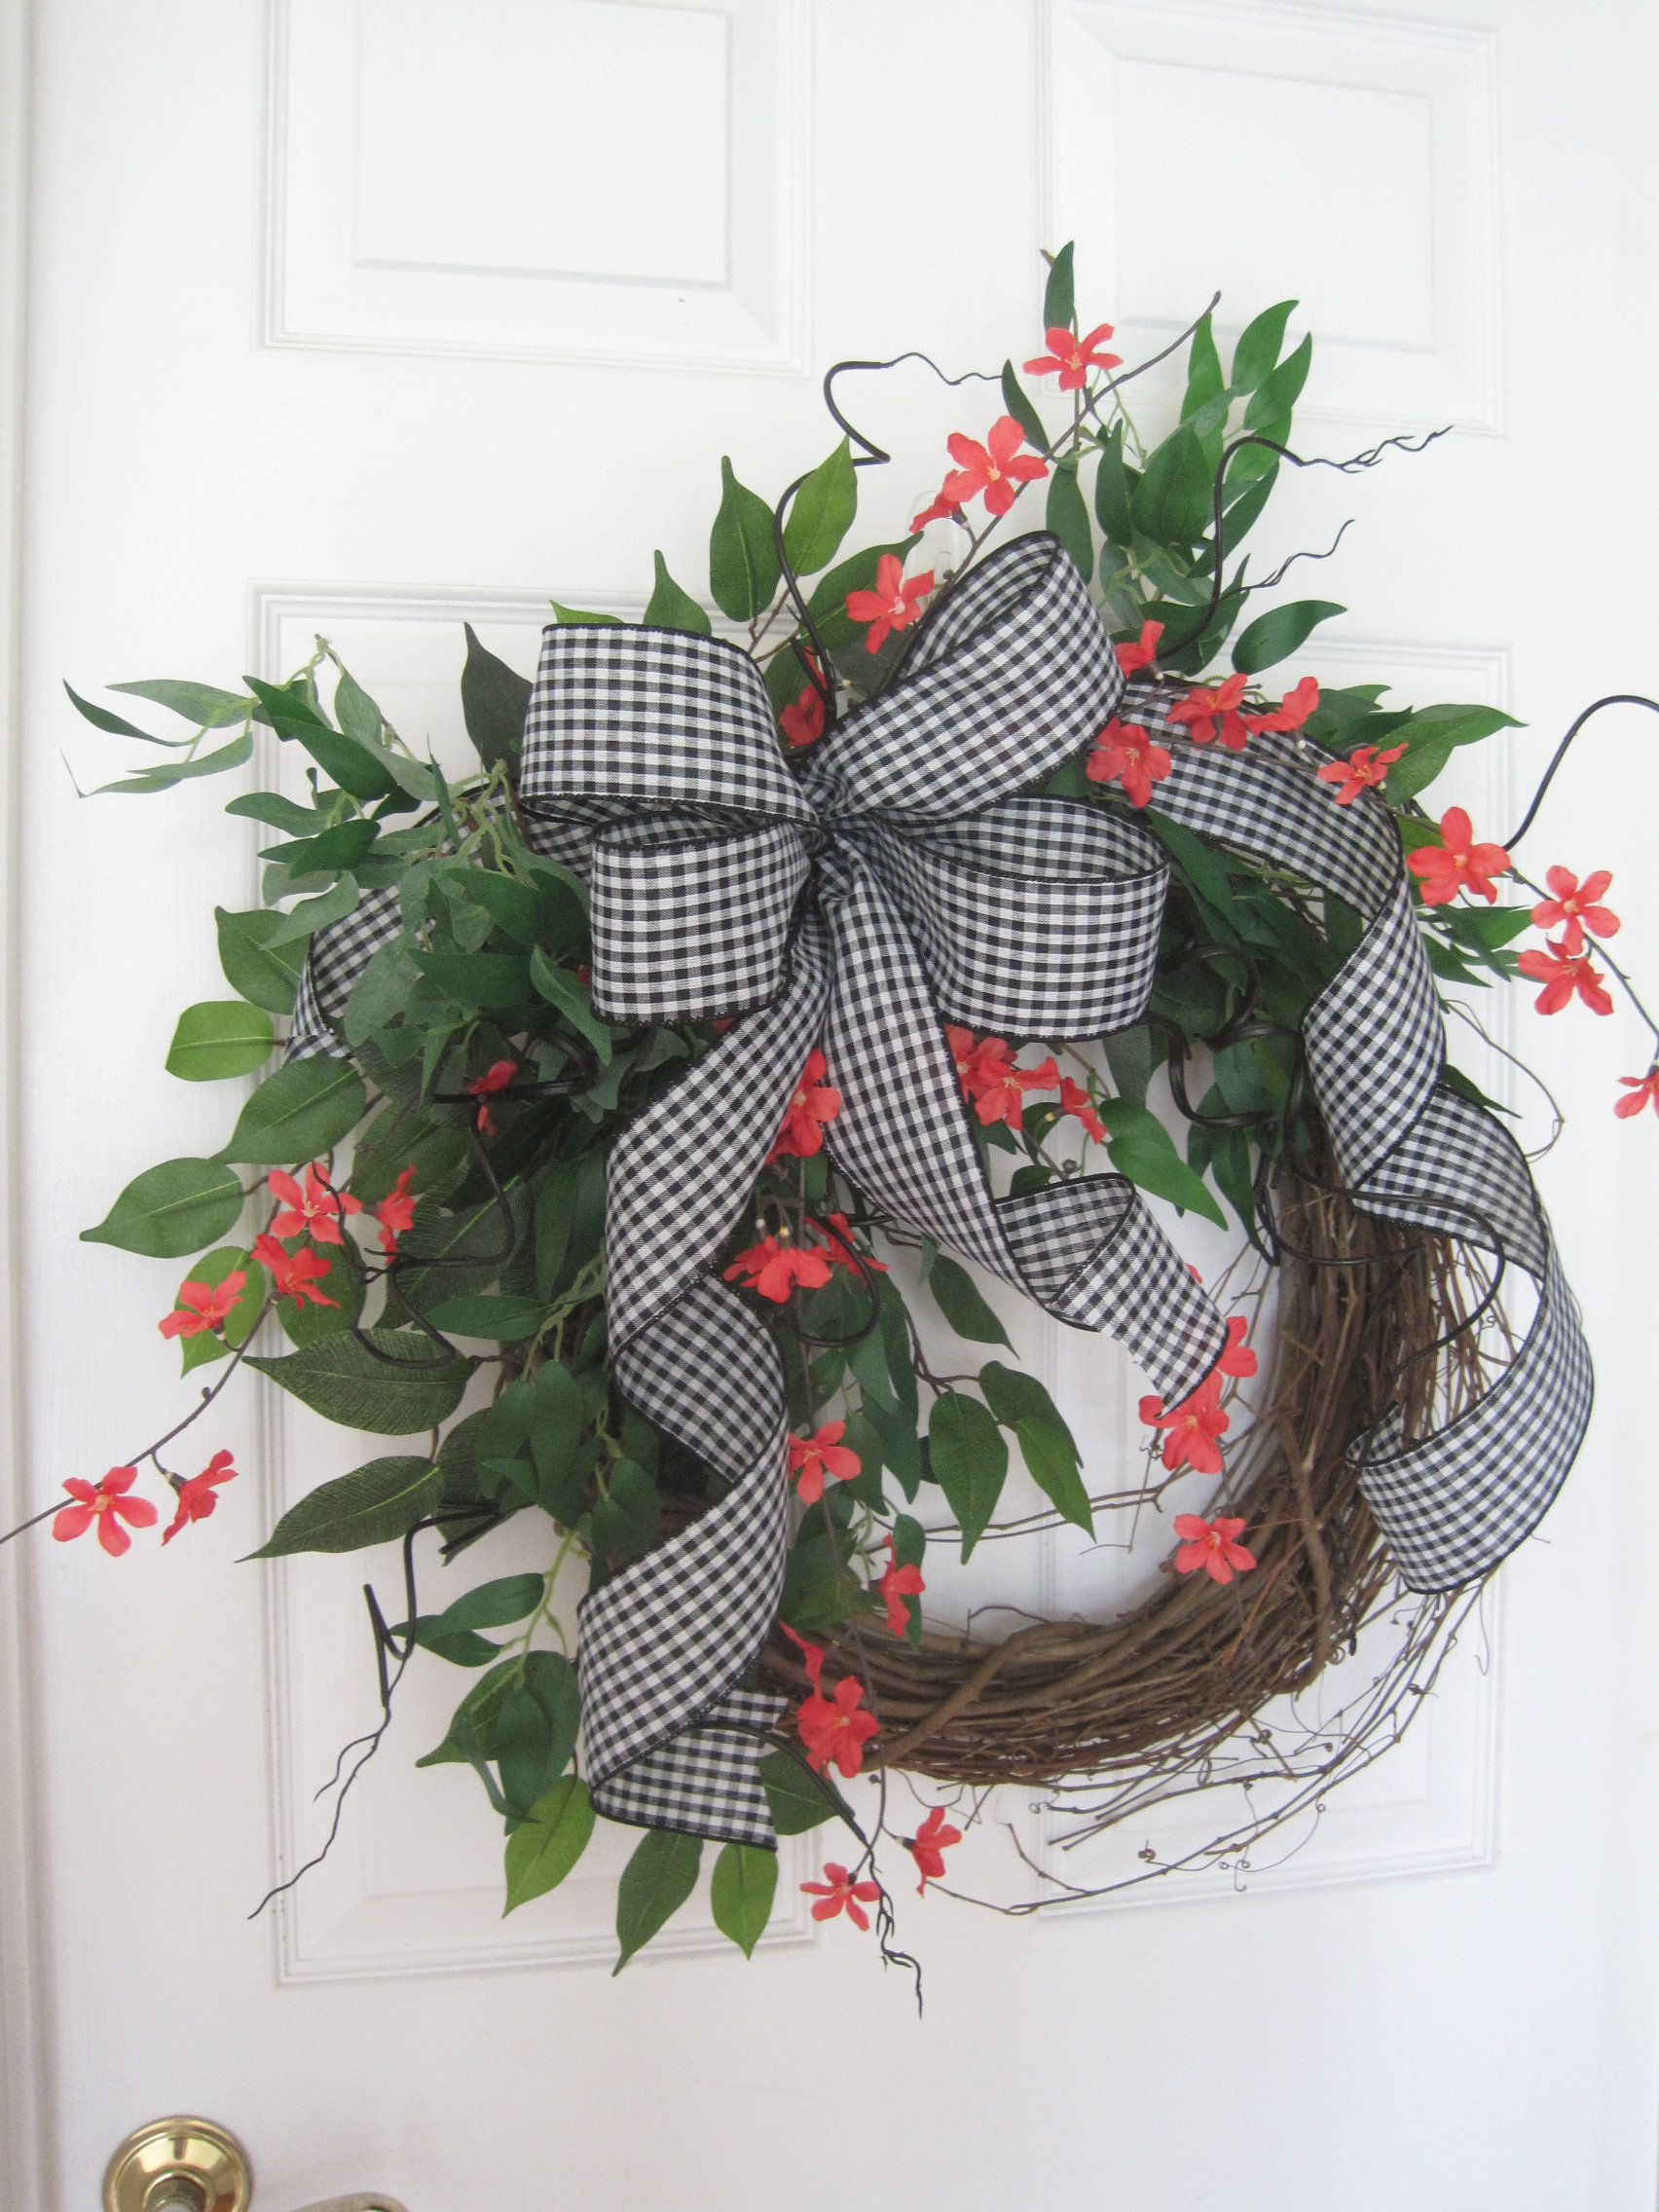 Photo of Spring Summer Wreath, 30X30 Front Door Wreath, Bright Coral Cherry Blossoms, Curly Willow, Wispy Greenery, Gingham Ribbon, Grapevine Wreath